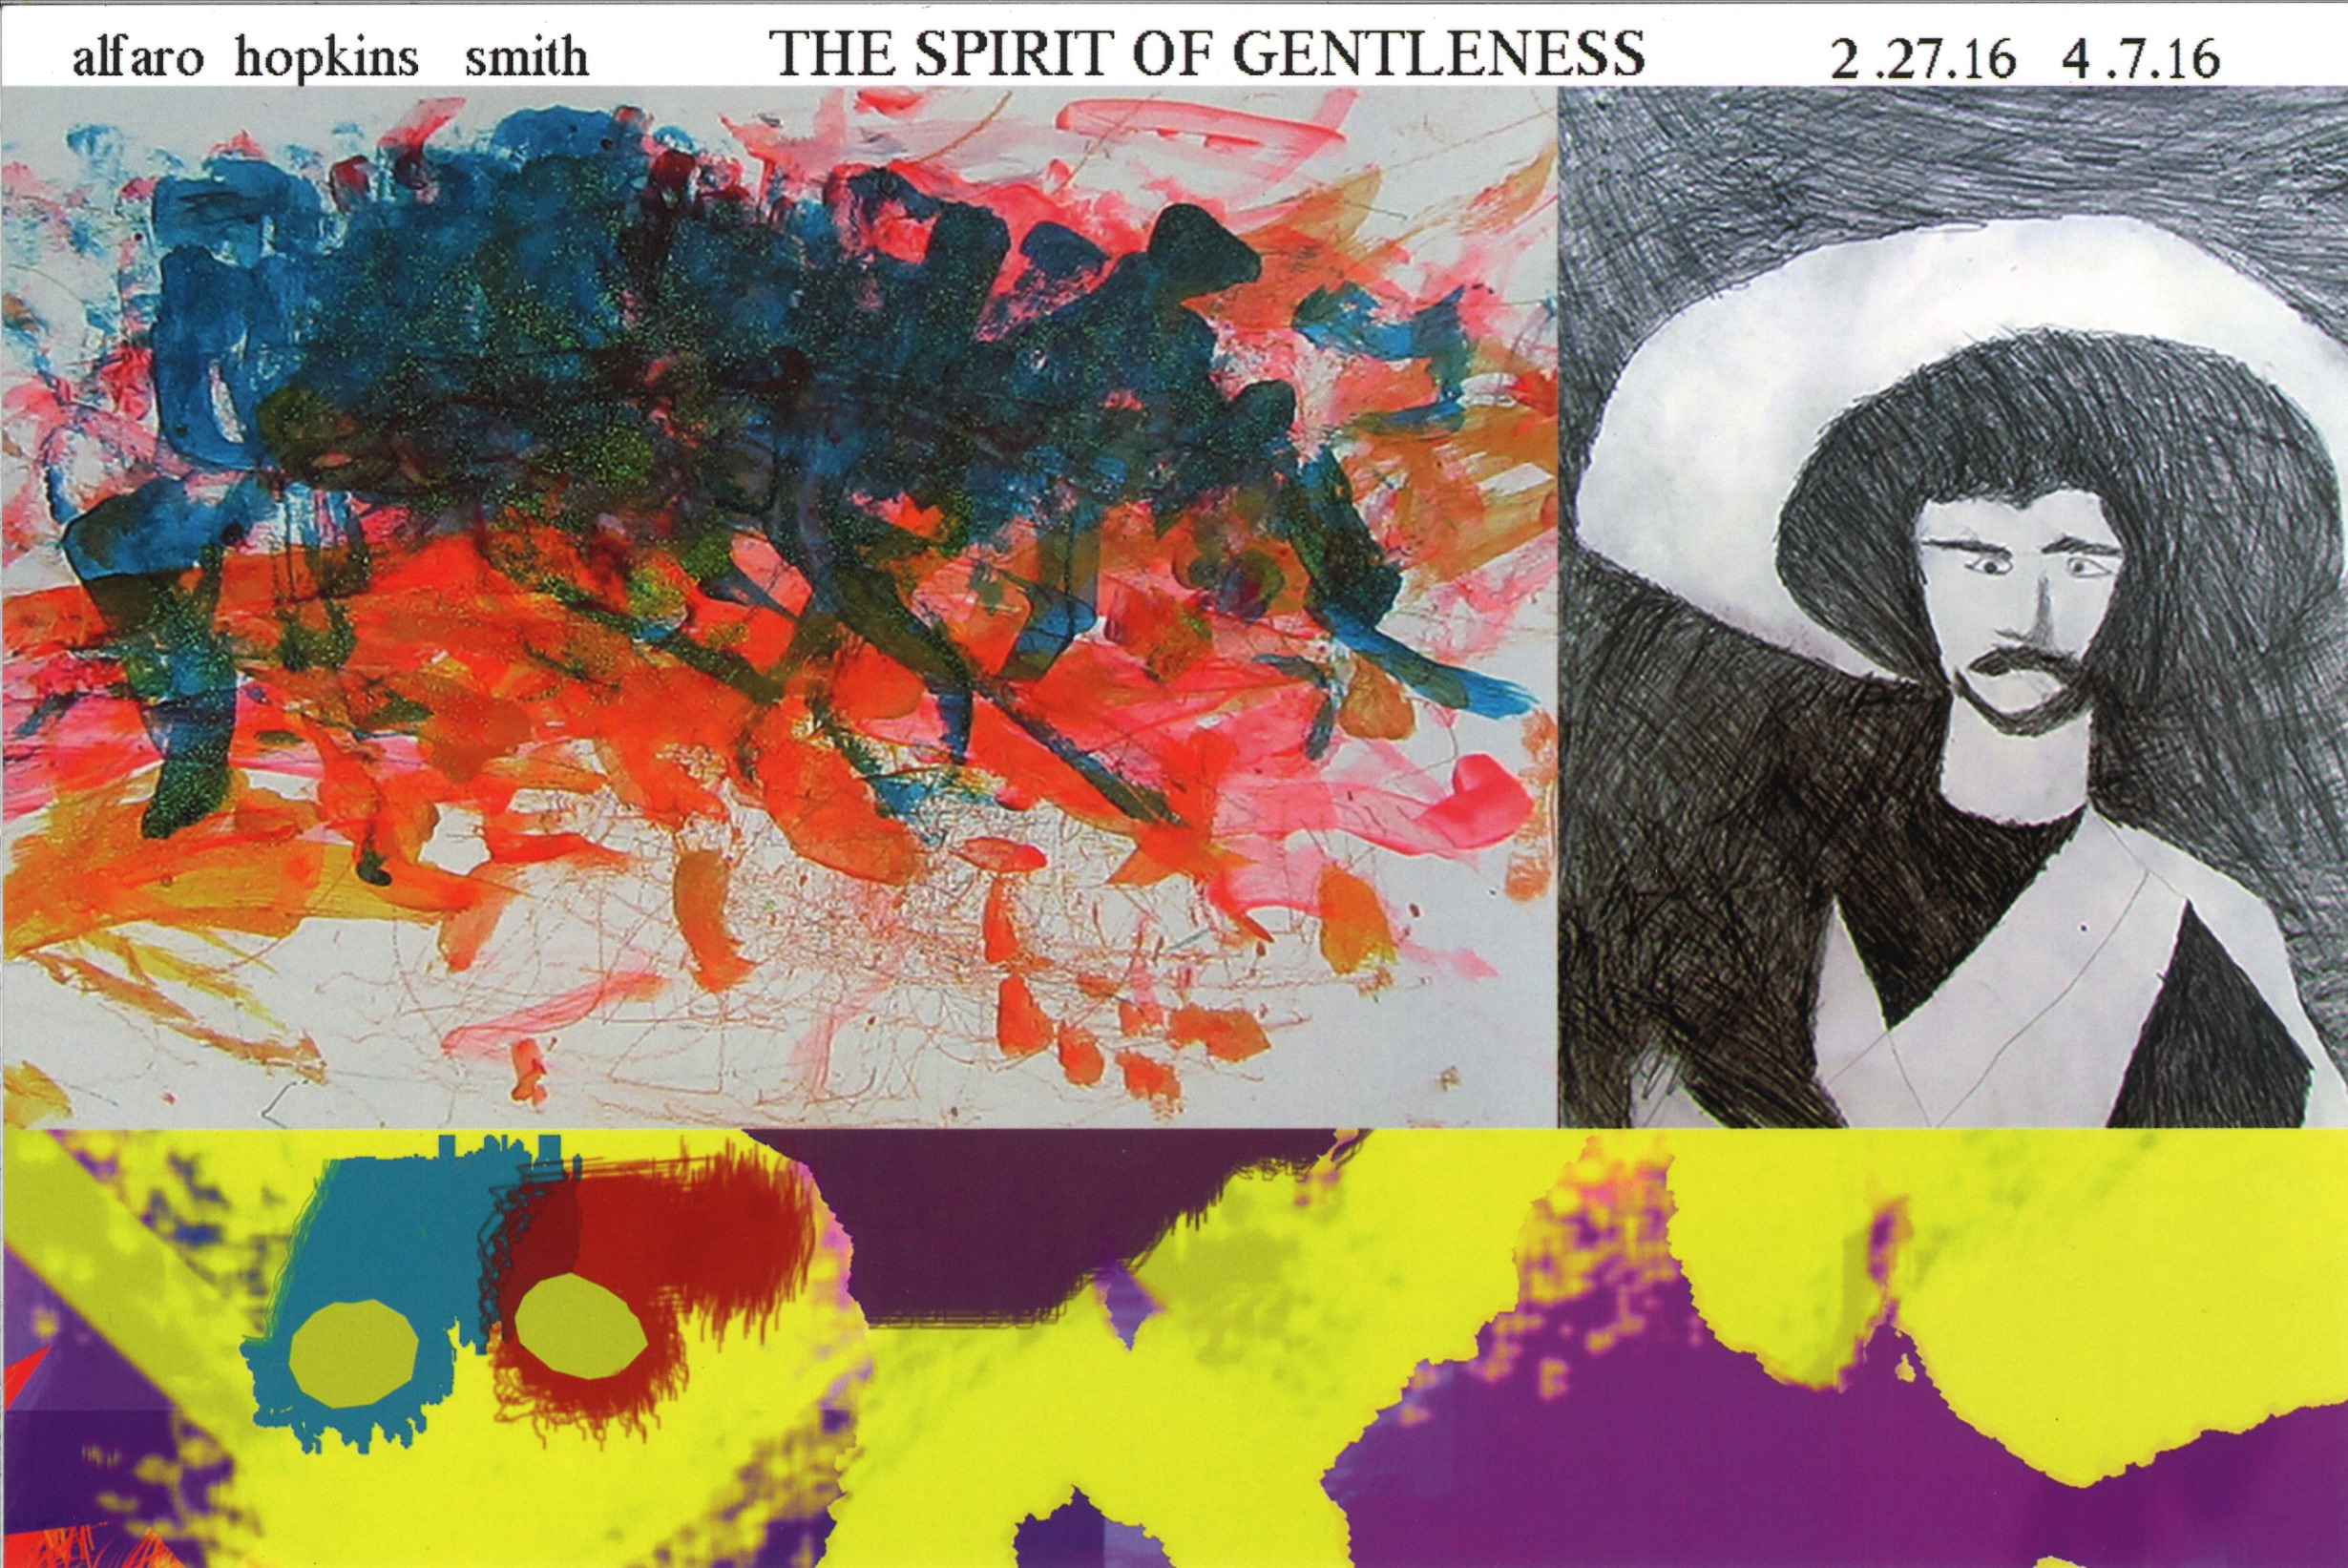 The Spirit of Gentleness: Gilberto Alfaro, Stephen Hopkins, & John Smith